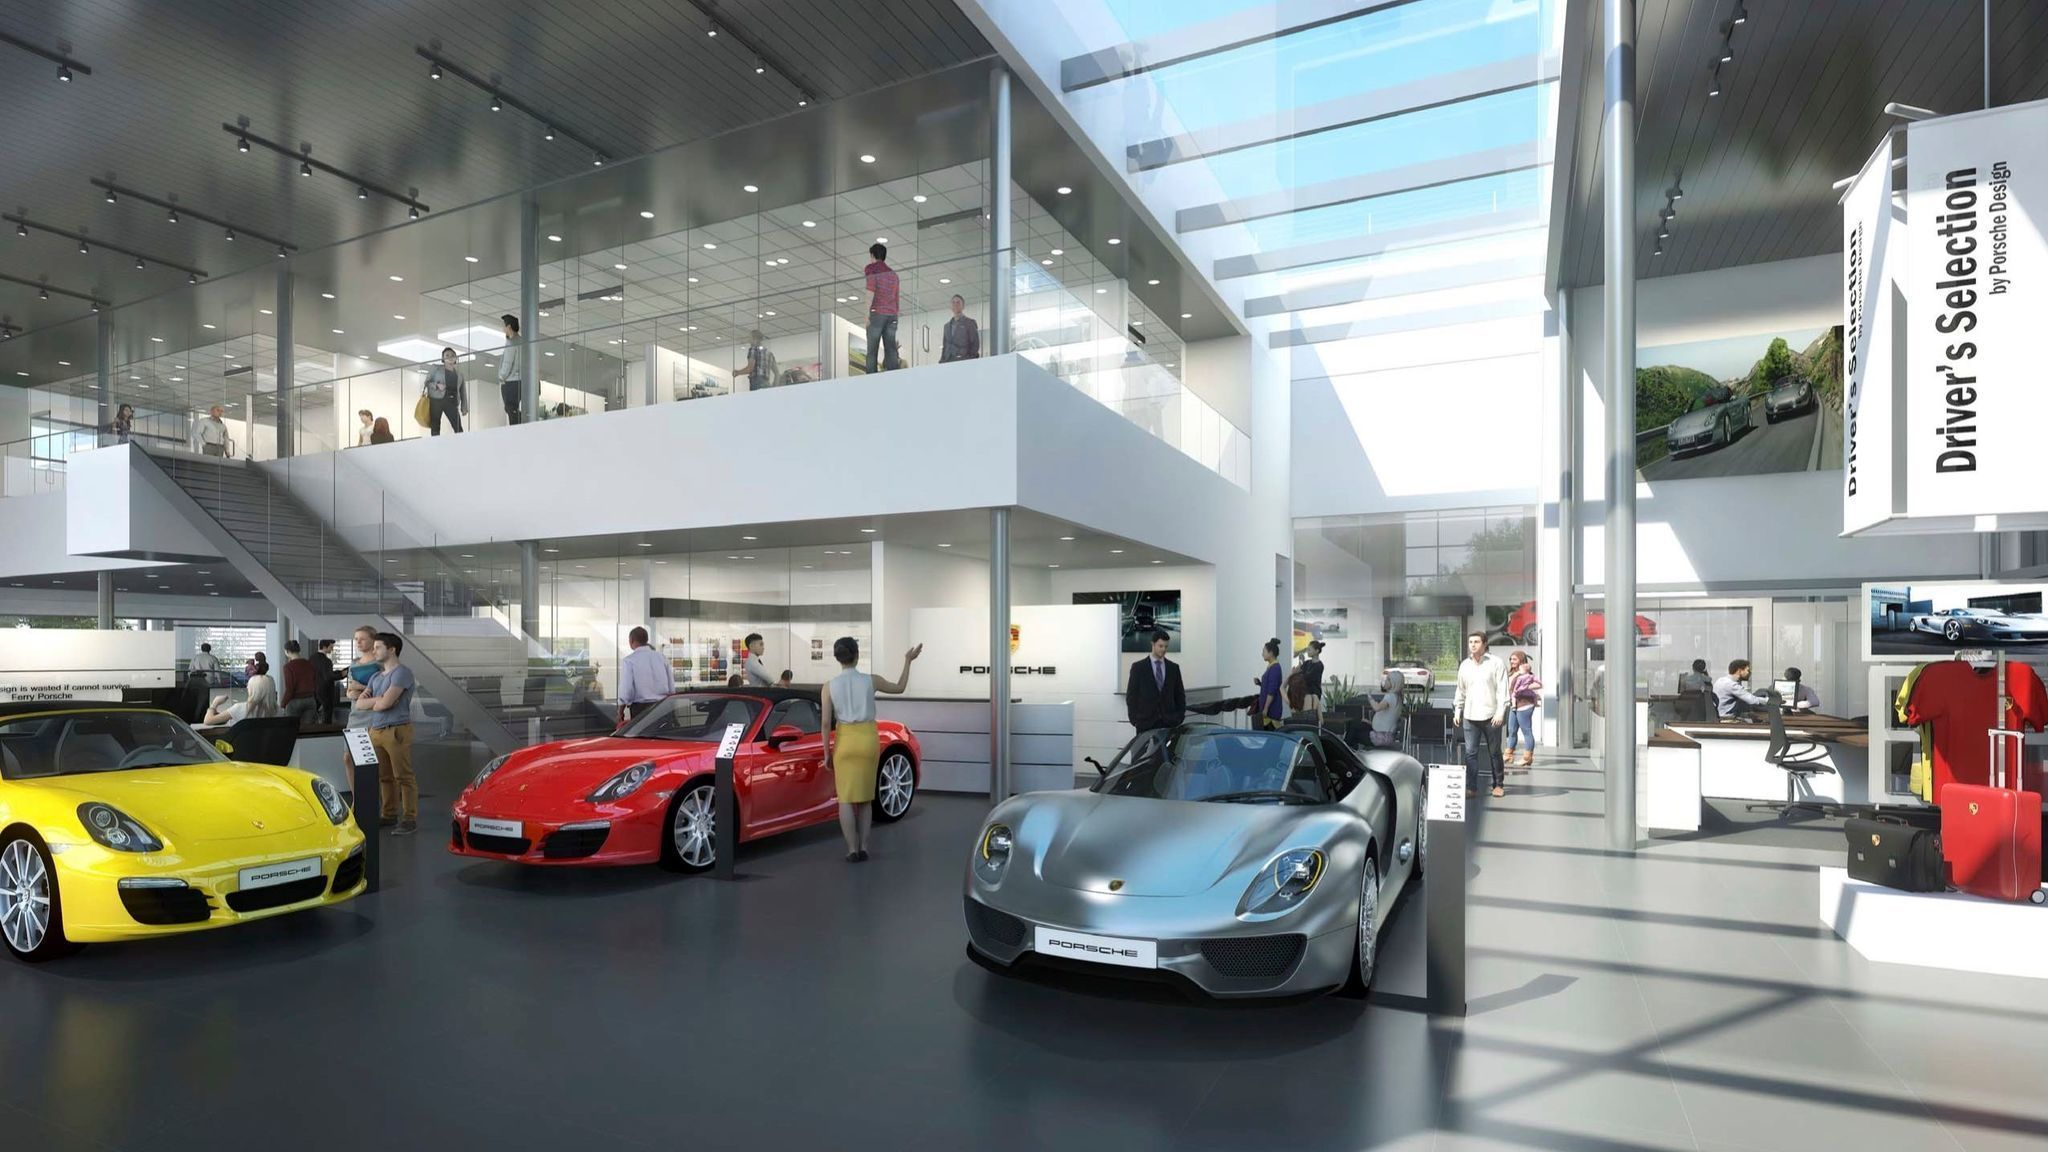 millenia clinches luxury car hub with ferrari porsche lexus